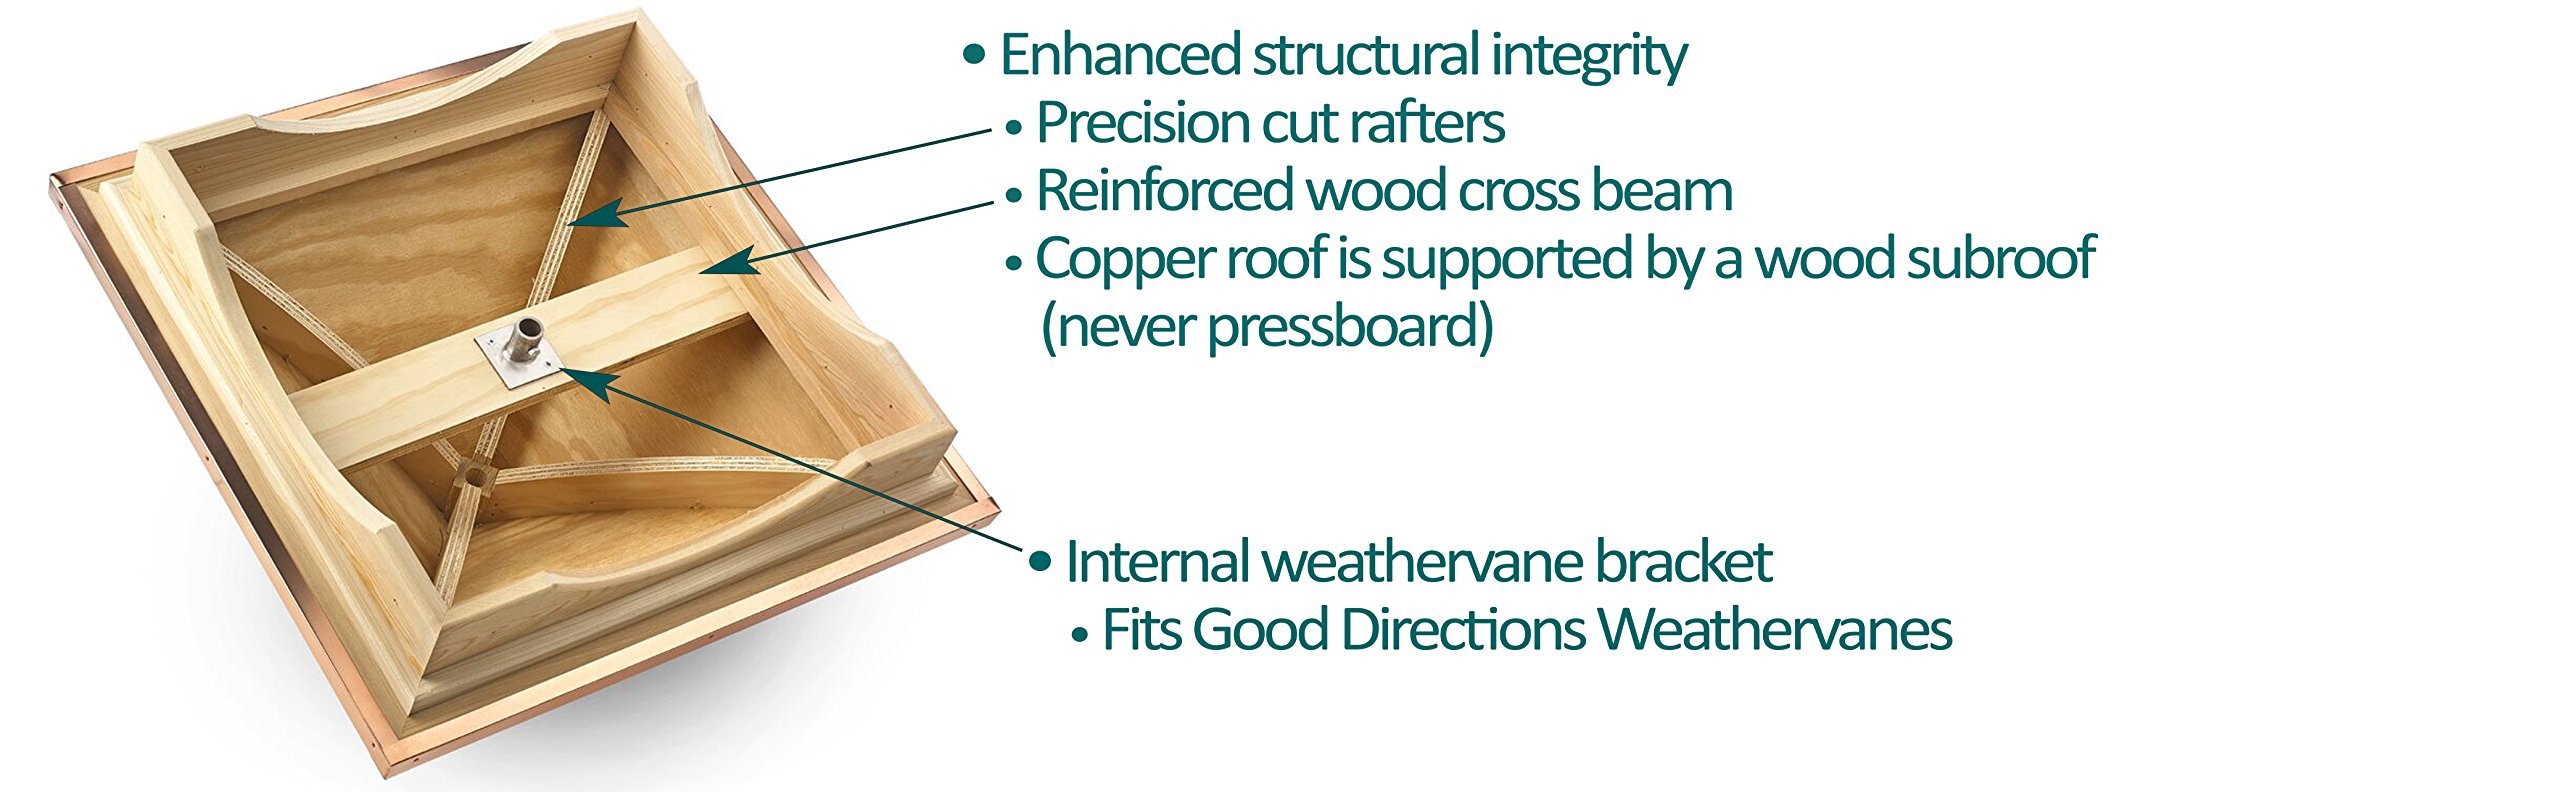 Good Directions Manchester Louvered Cupola with Pure Copper Roof, Cypress Wood, 26'' x 32'', Quick Ship, Reinforced Rafters and Louvers, Cupolas by Good Directions (Image #3)